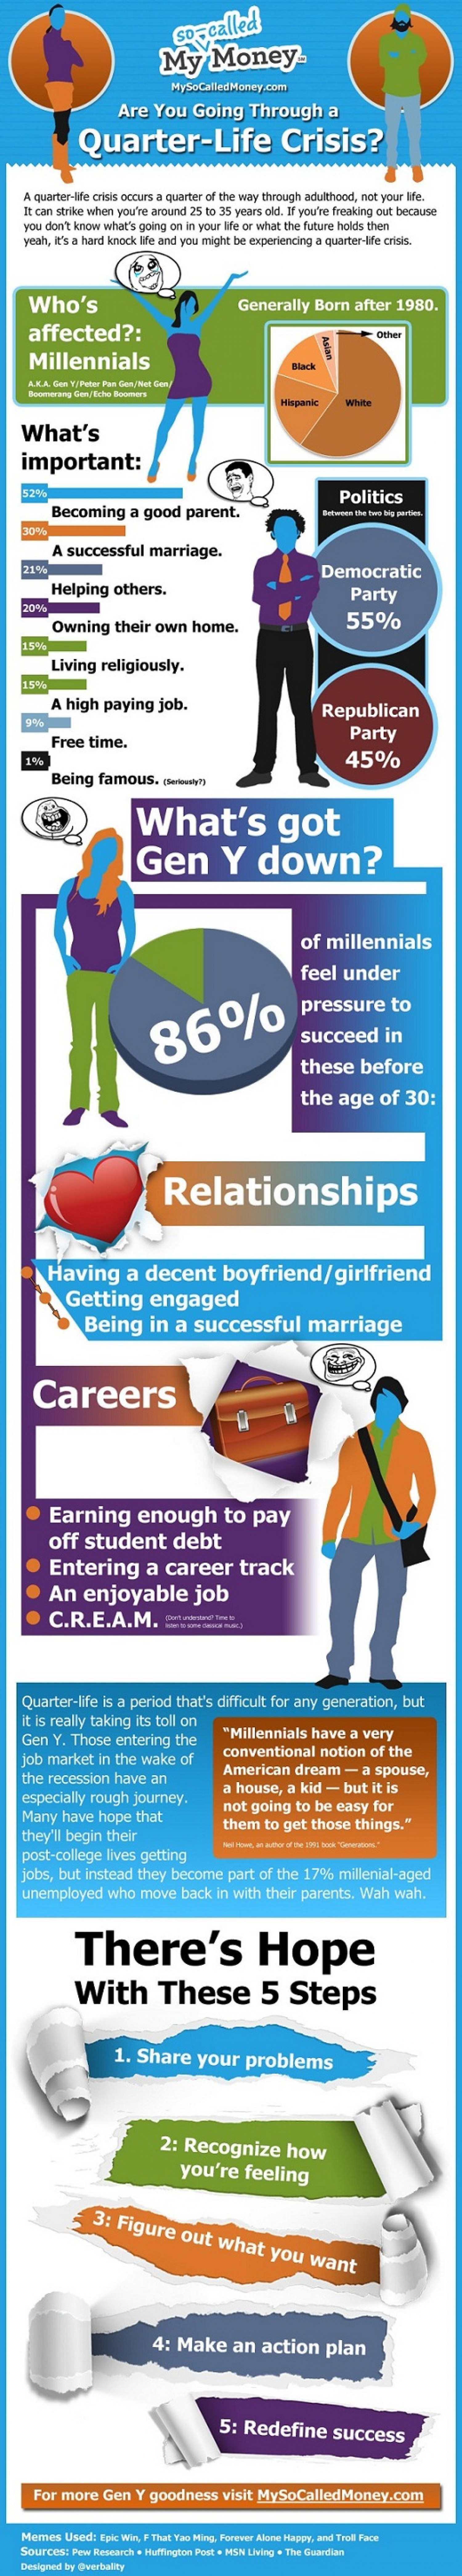 Are You Going Through a Quarter-Life Crisis? Infographic